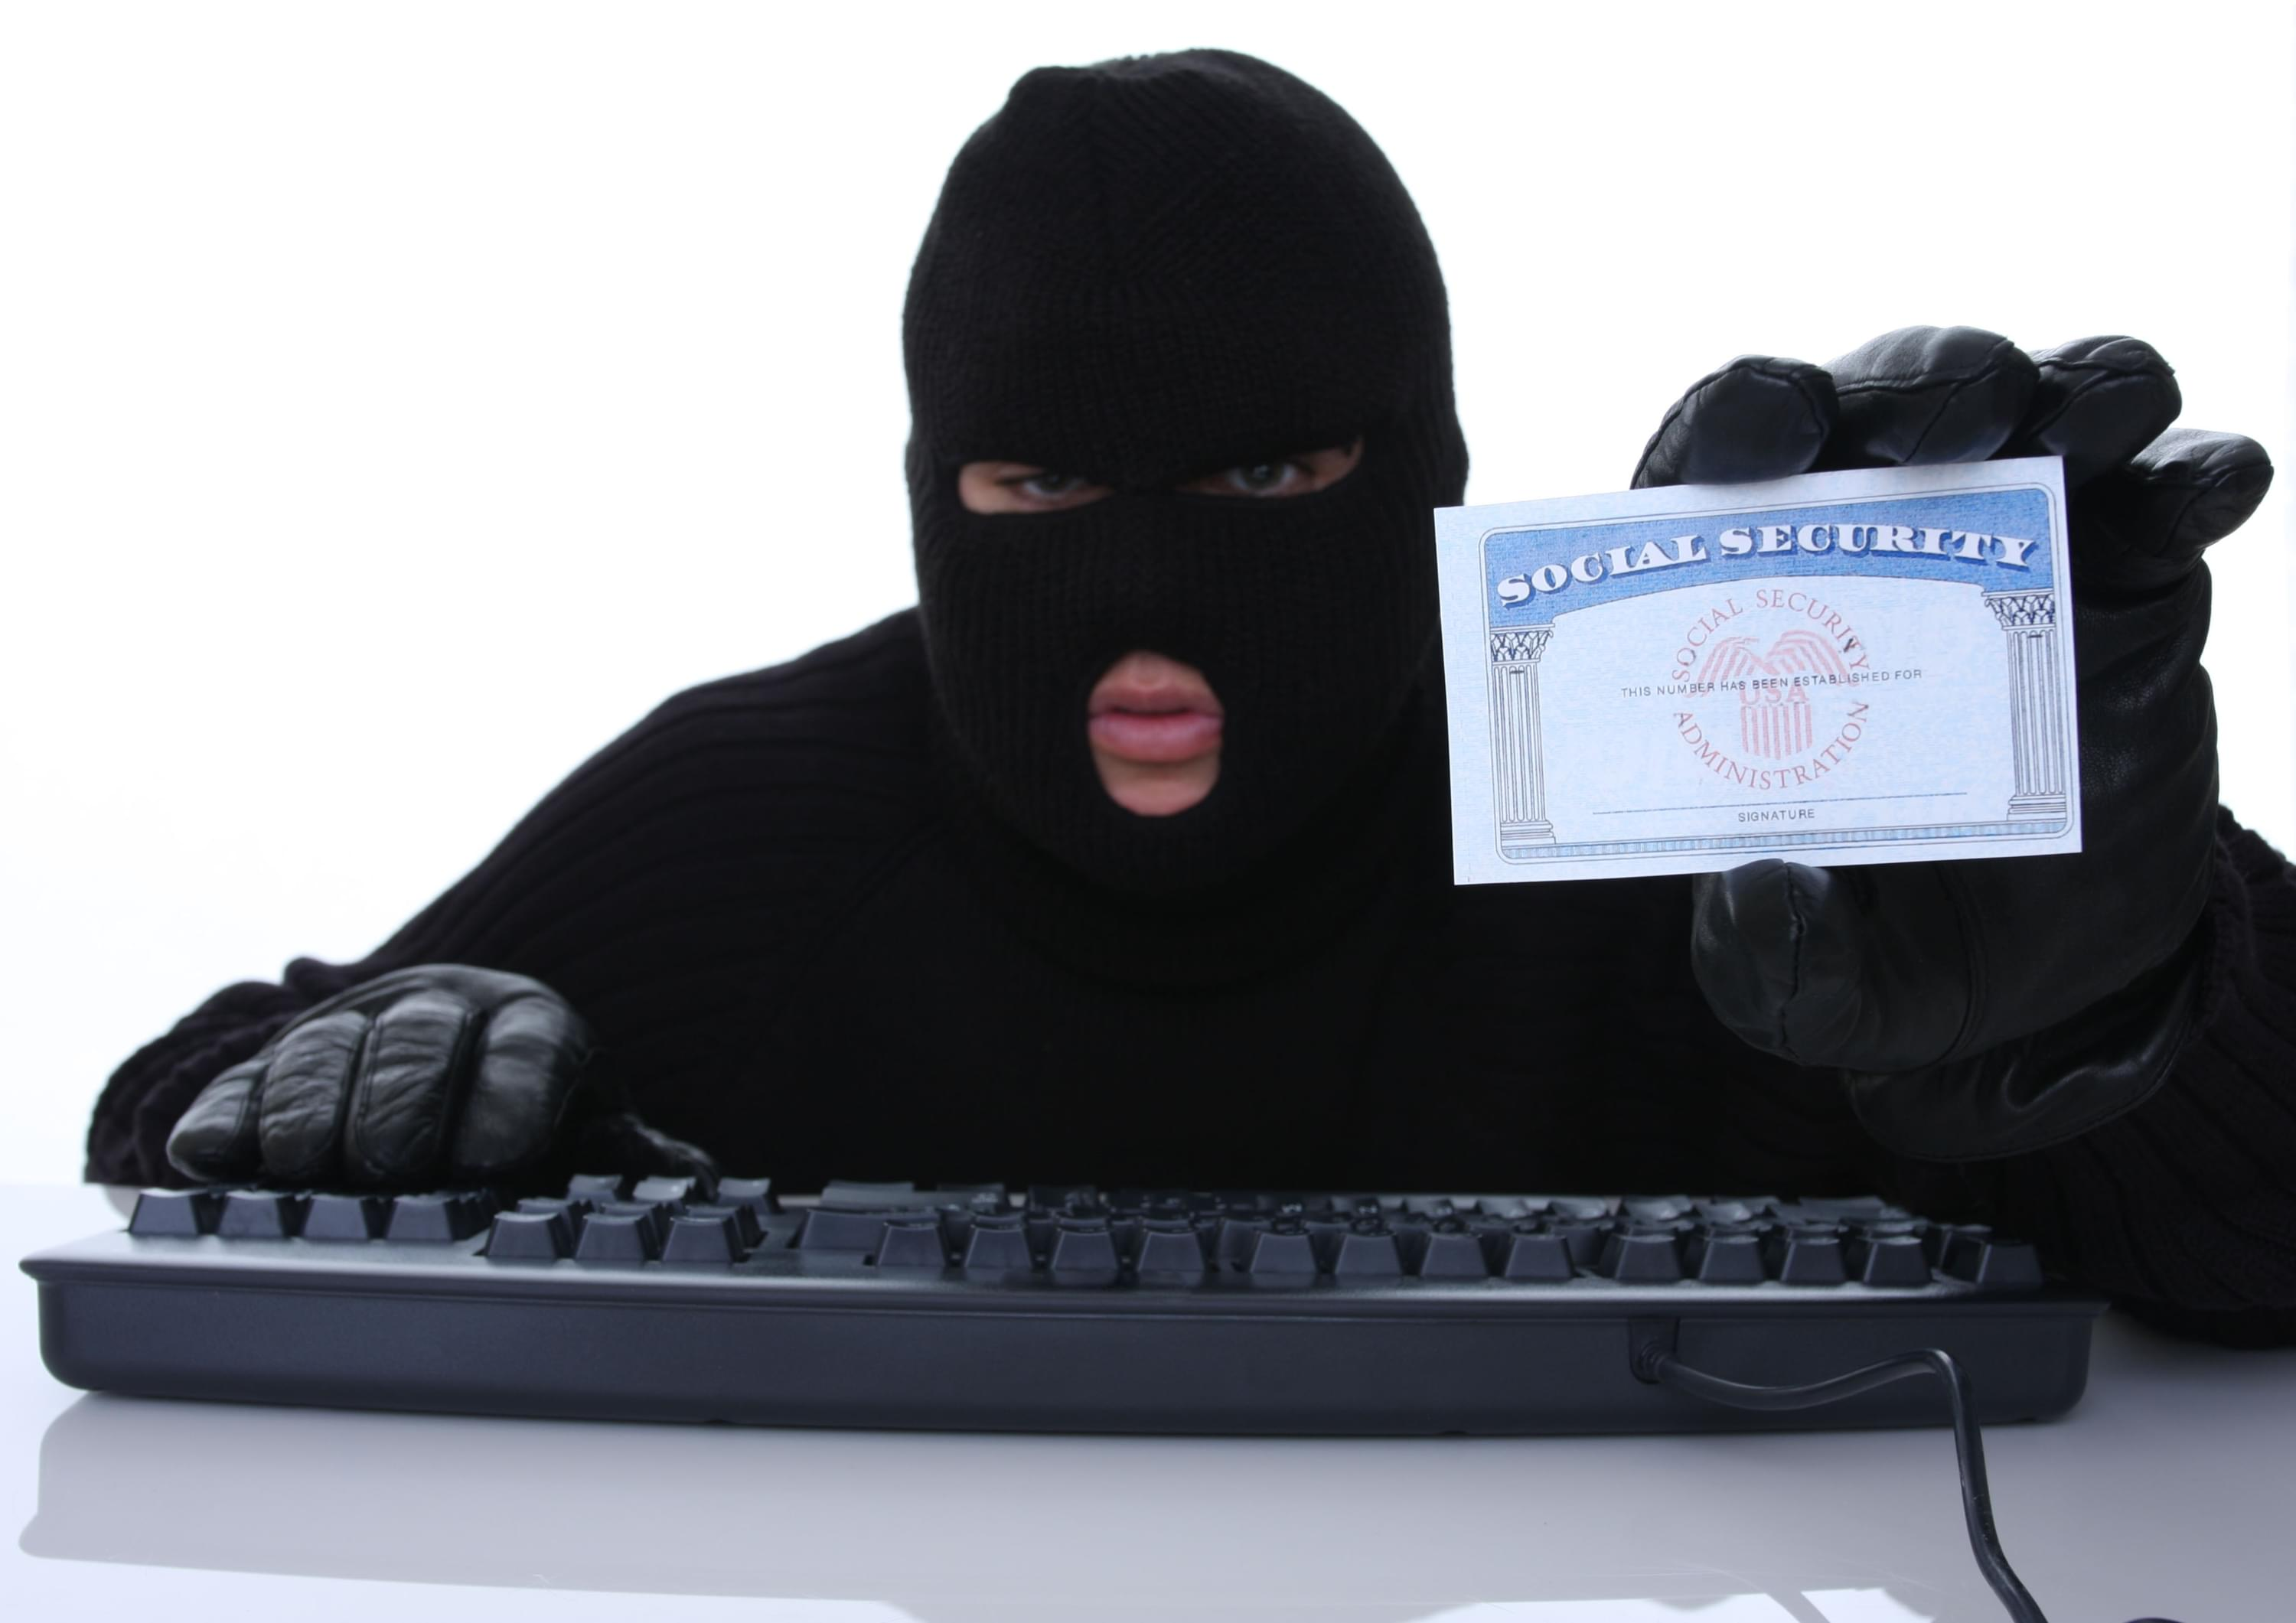 Person in ski mask at a computer keyboard holding a social security card